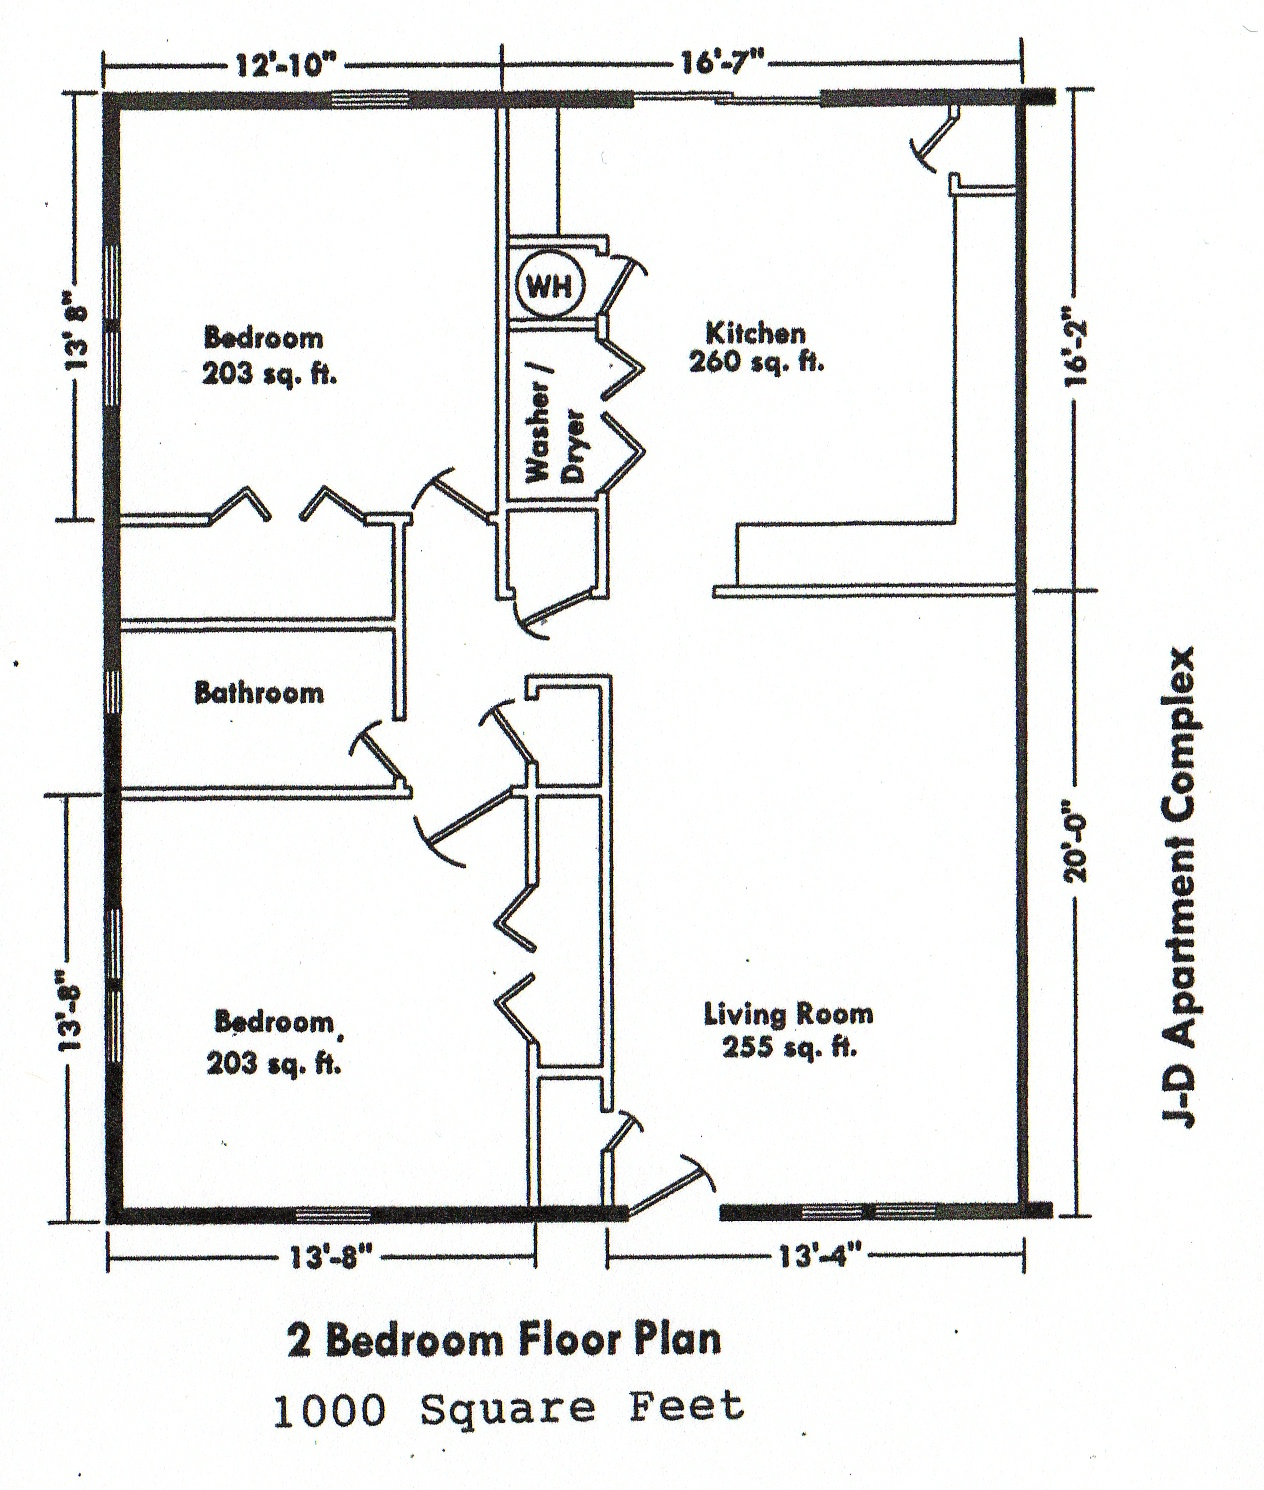 Bedroom floor plans over 5000 house plans for 2 bedroom 2 bath home plans